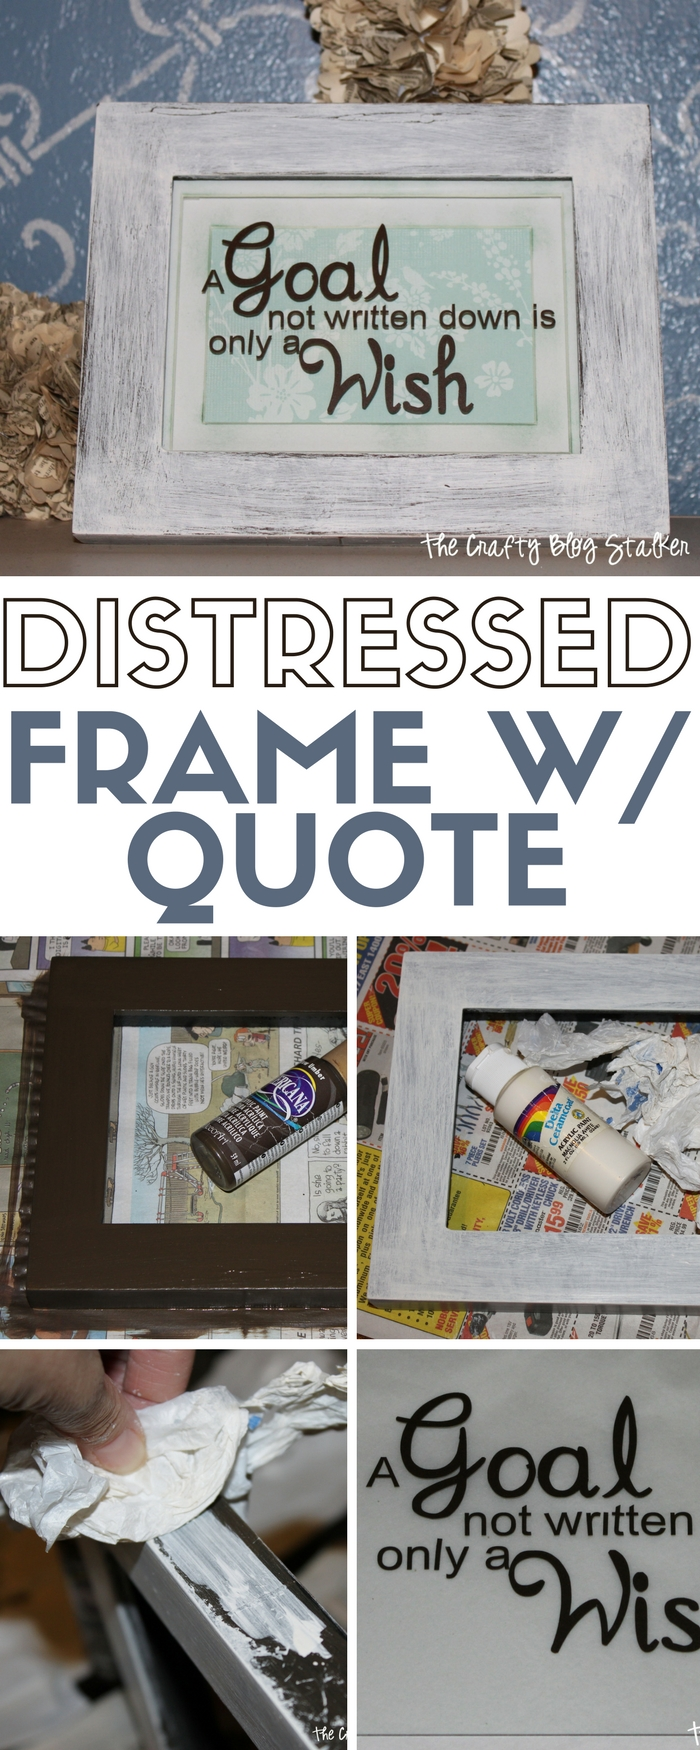 Decorative Distressed Frame | Vinyl Quote | Home Decor | Cricut | Easy DIY Craft Tutorial Idea